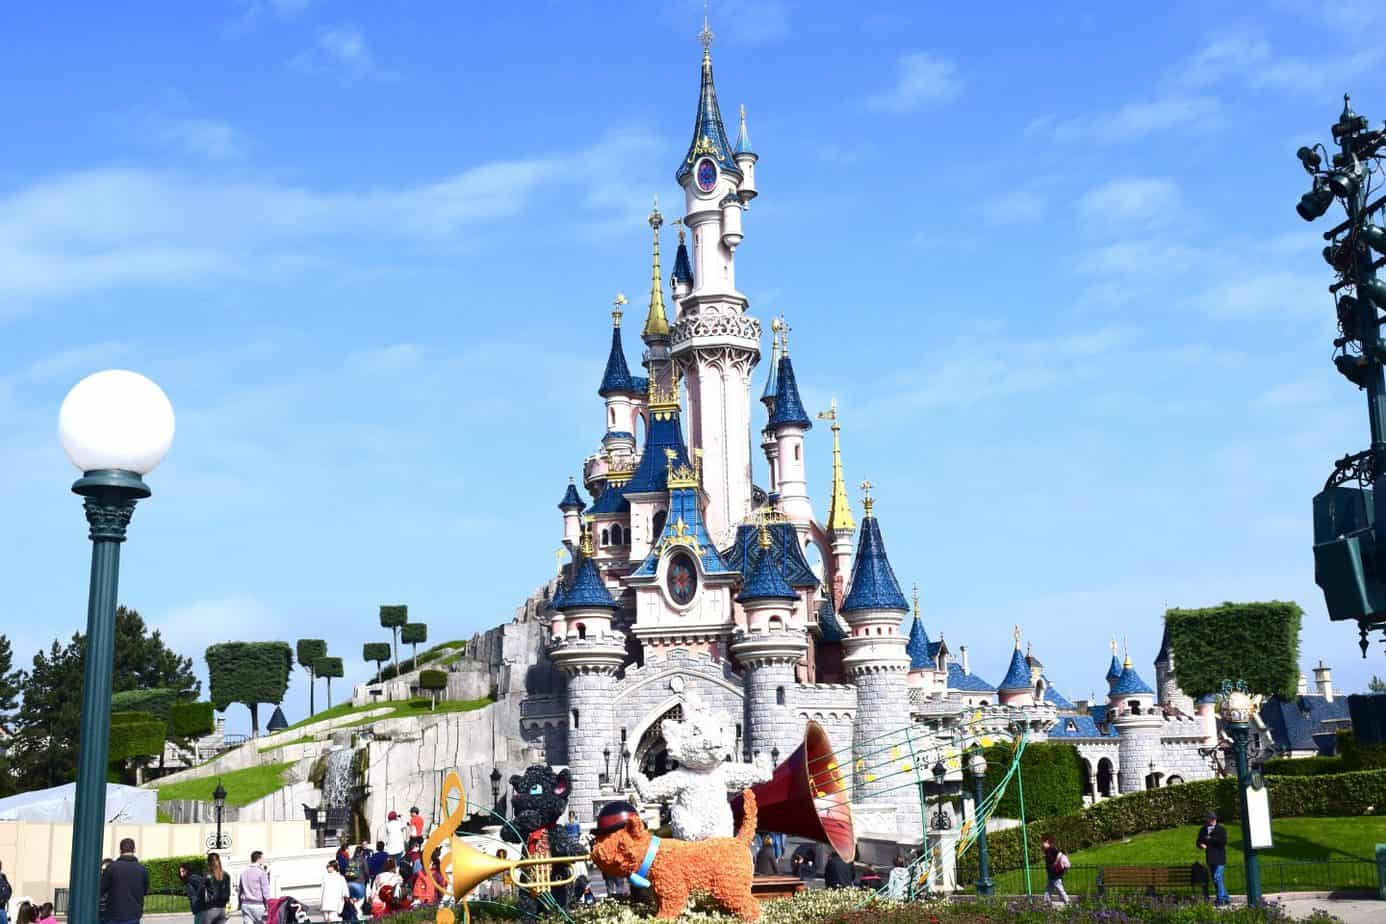 Amazing view of the castle at Disneyland Paris